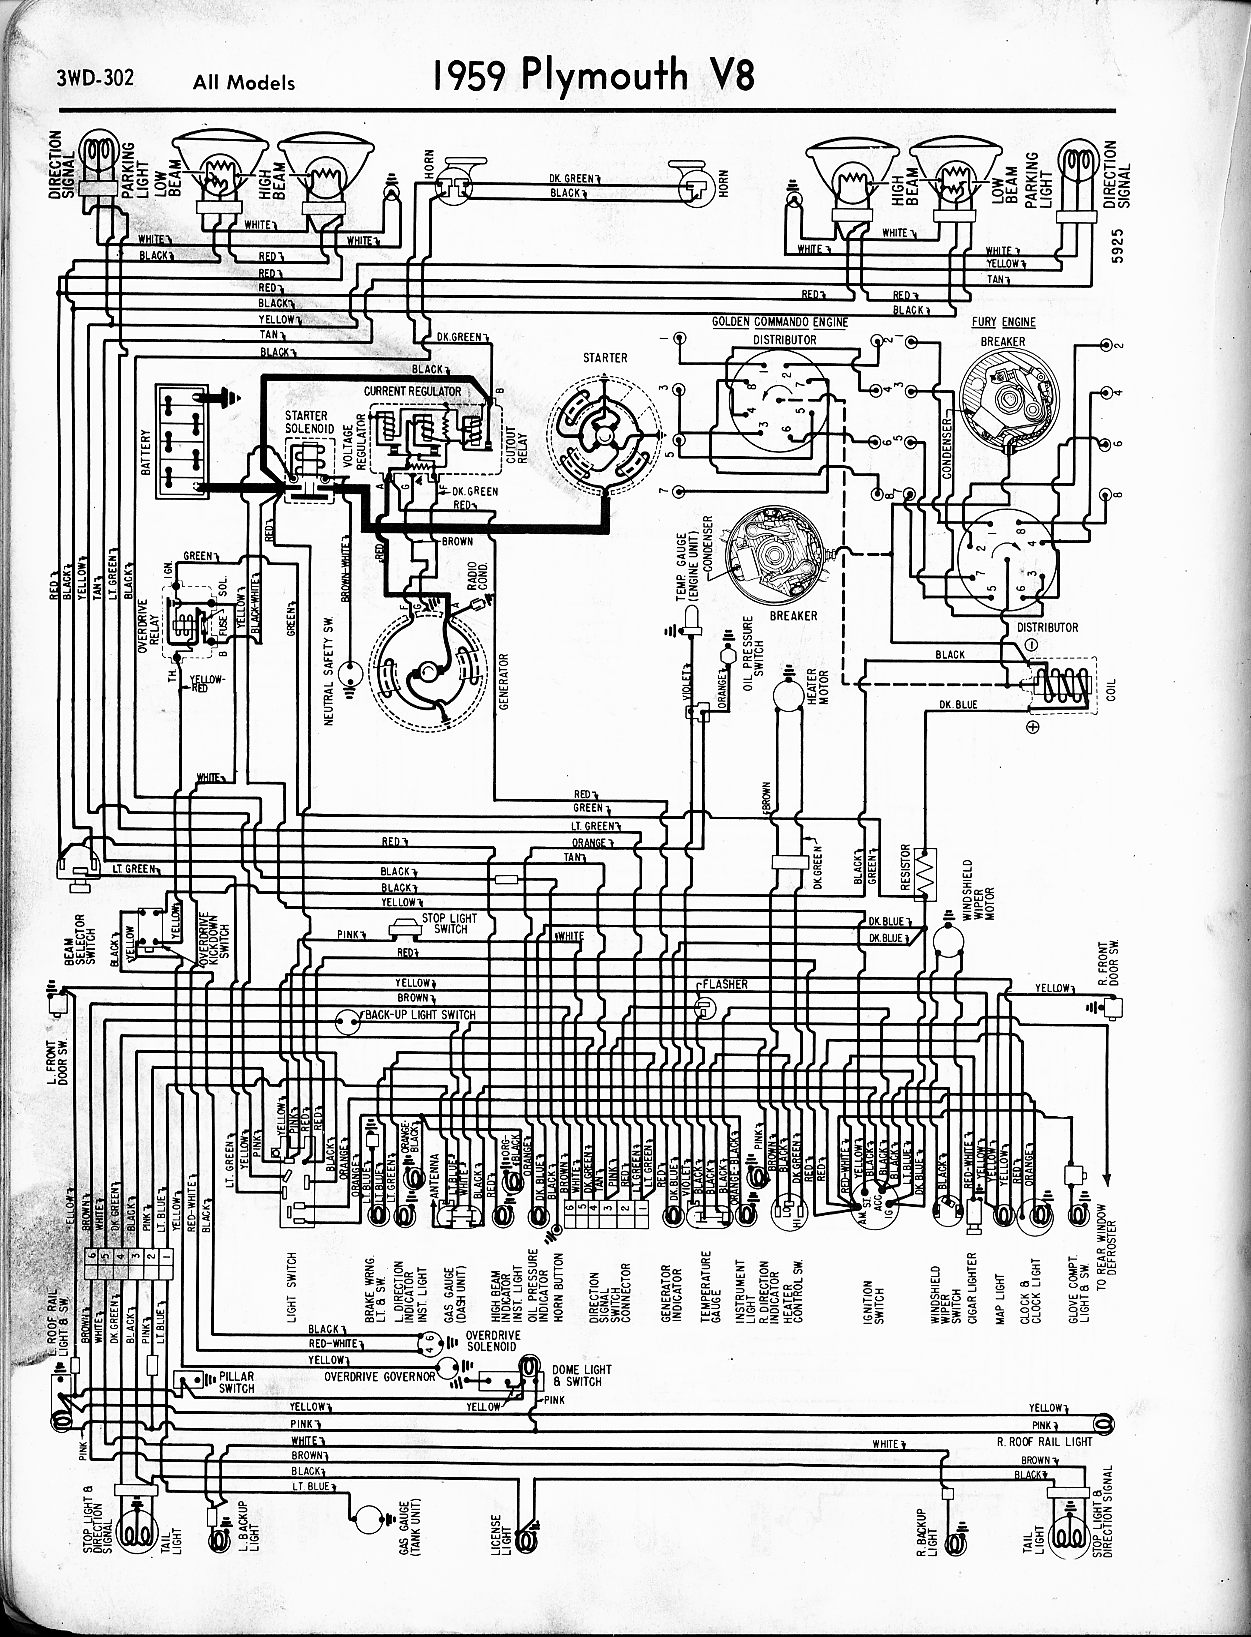 Chevy wiring diagrams 1956 1965 plymouth wiring the old car manual project